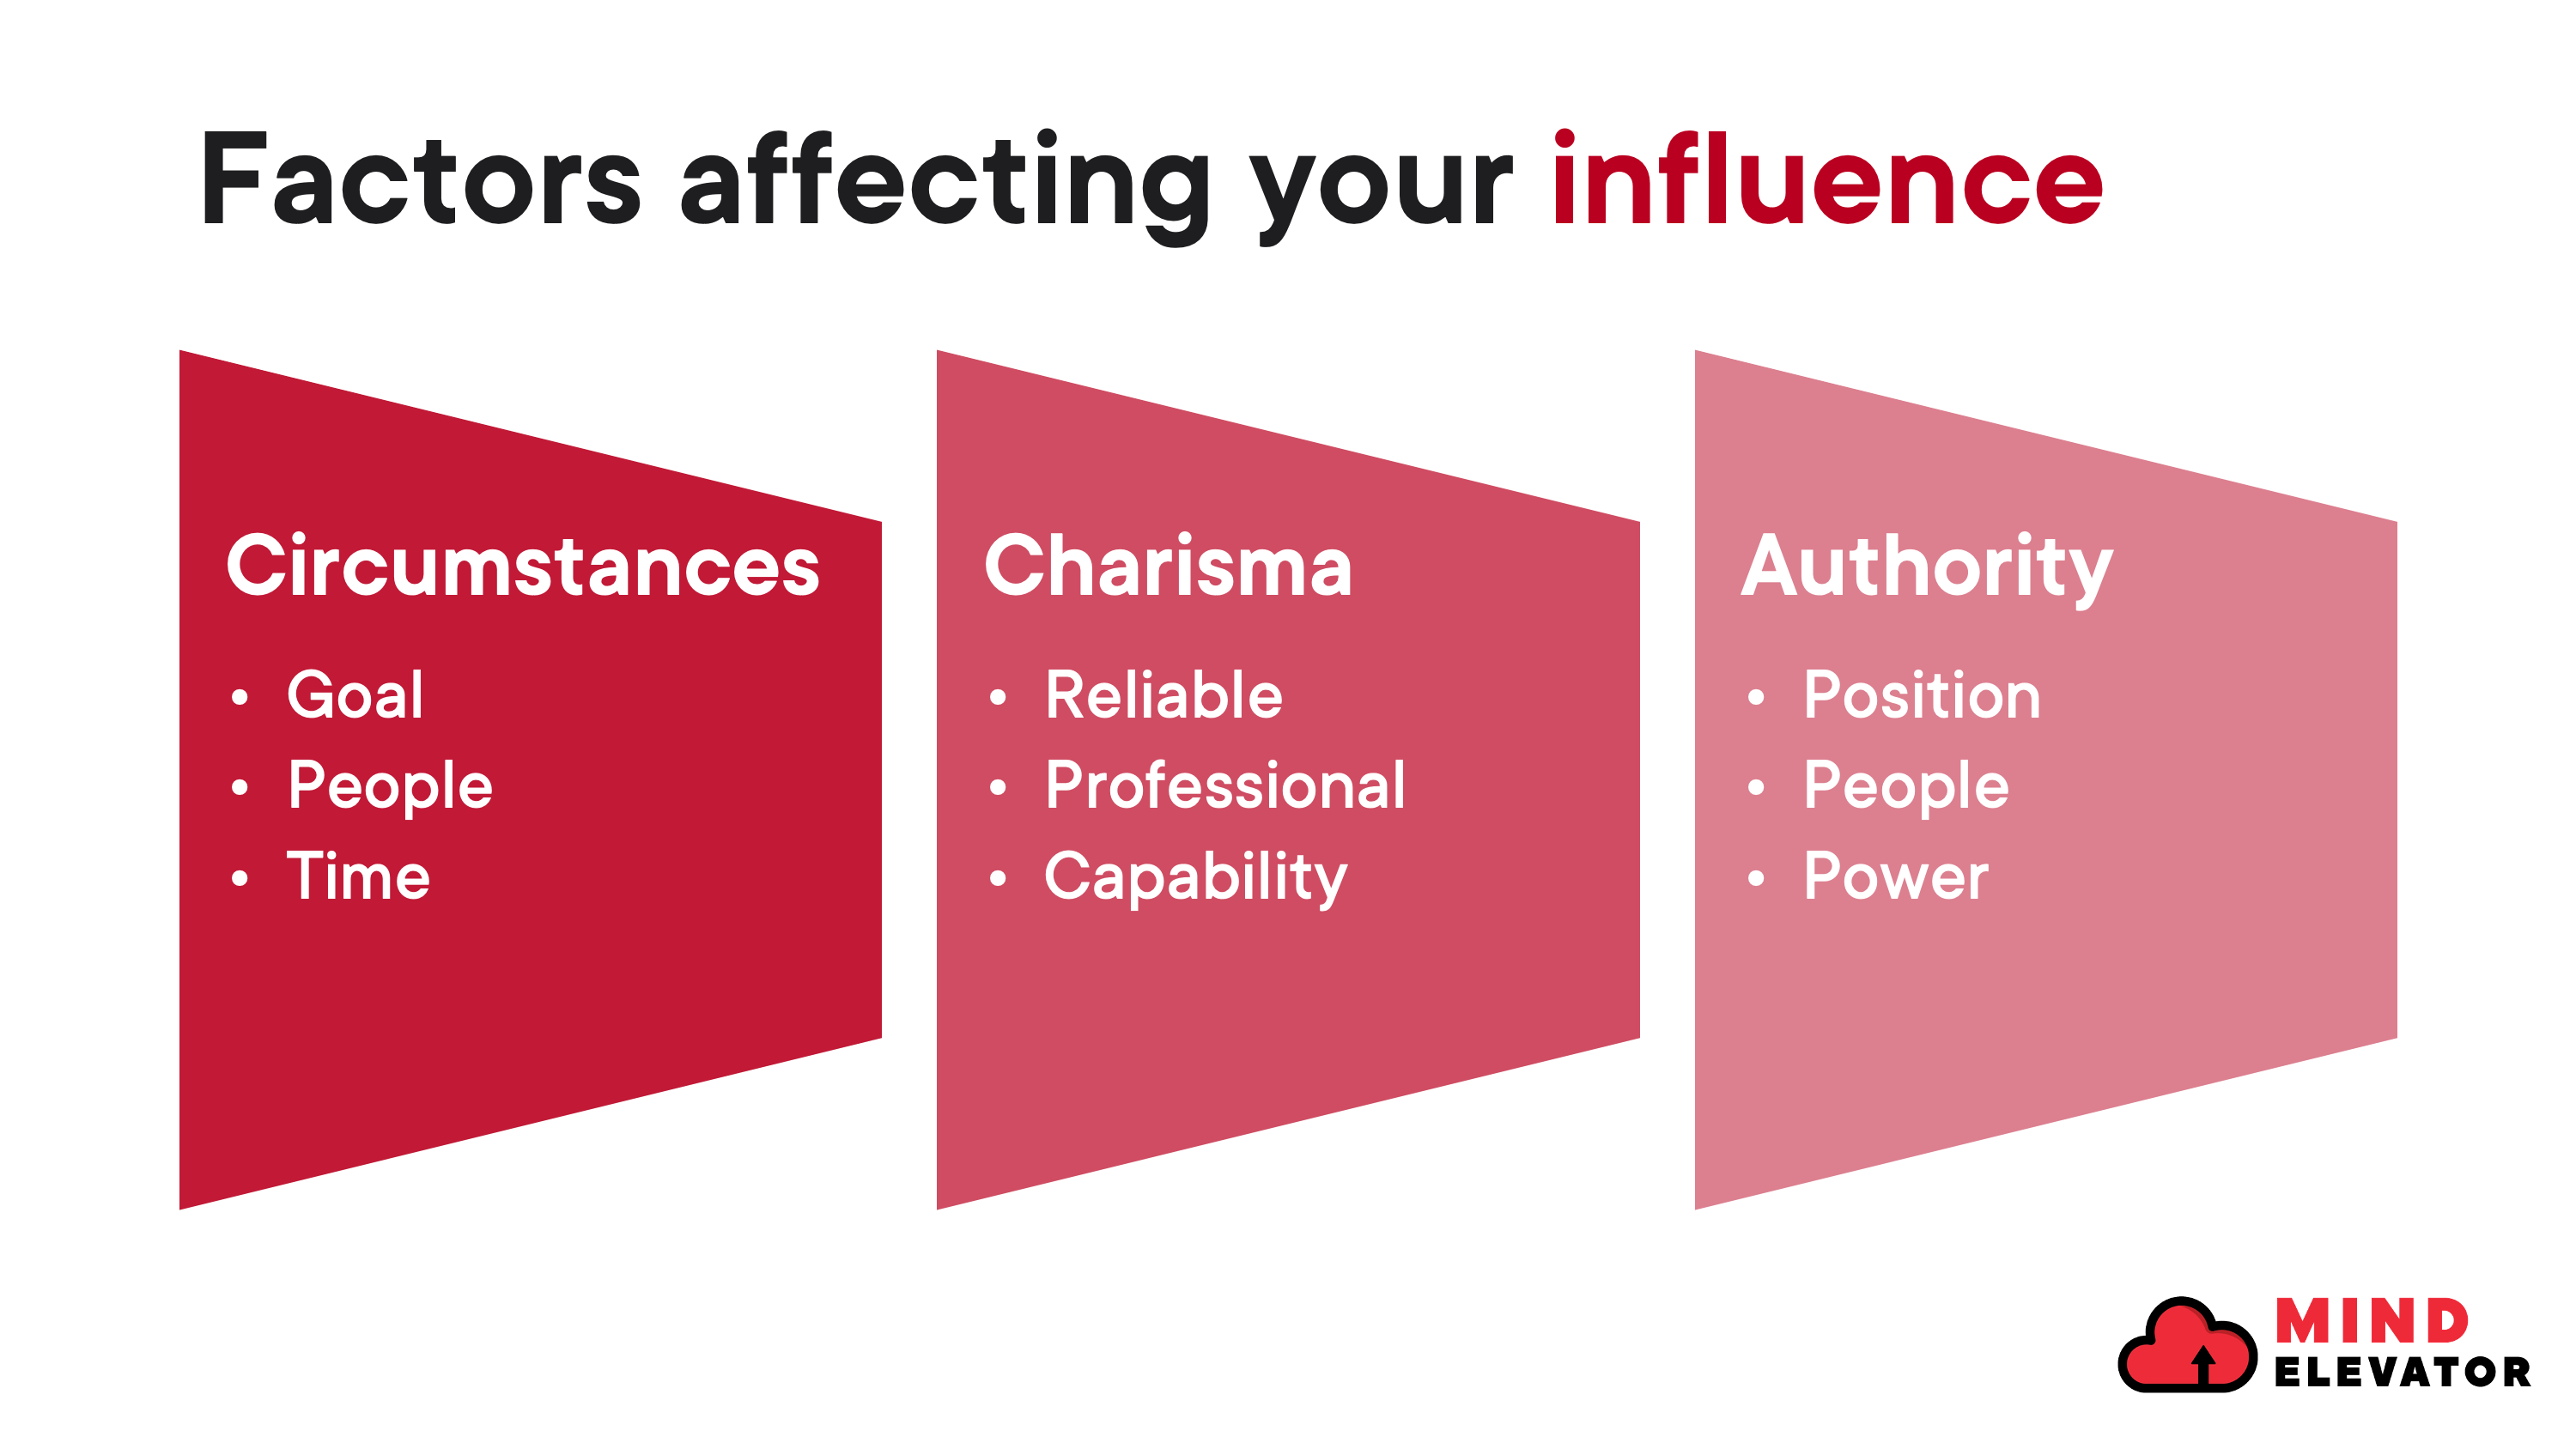 Three factors affecting your influence in your leadership: characteristics, charisma and authority